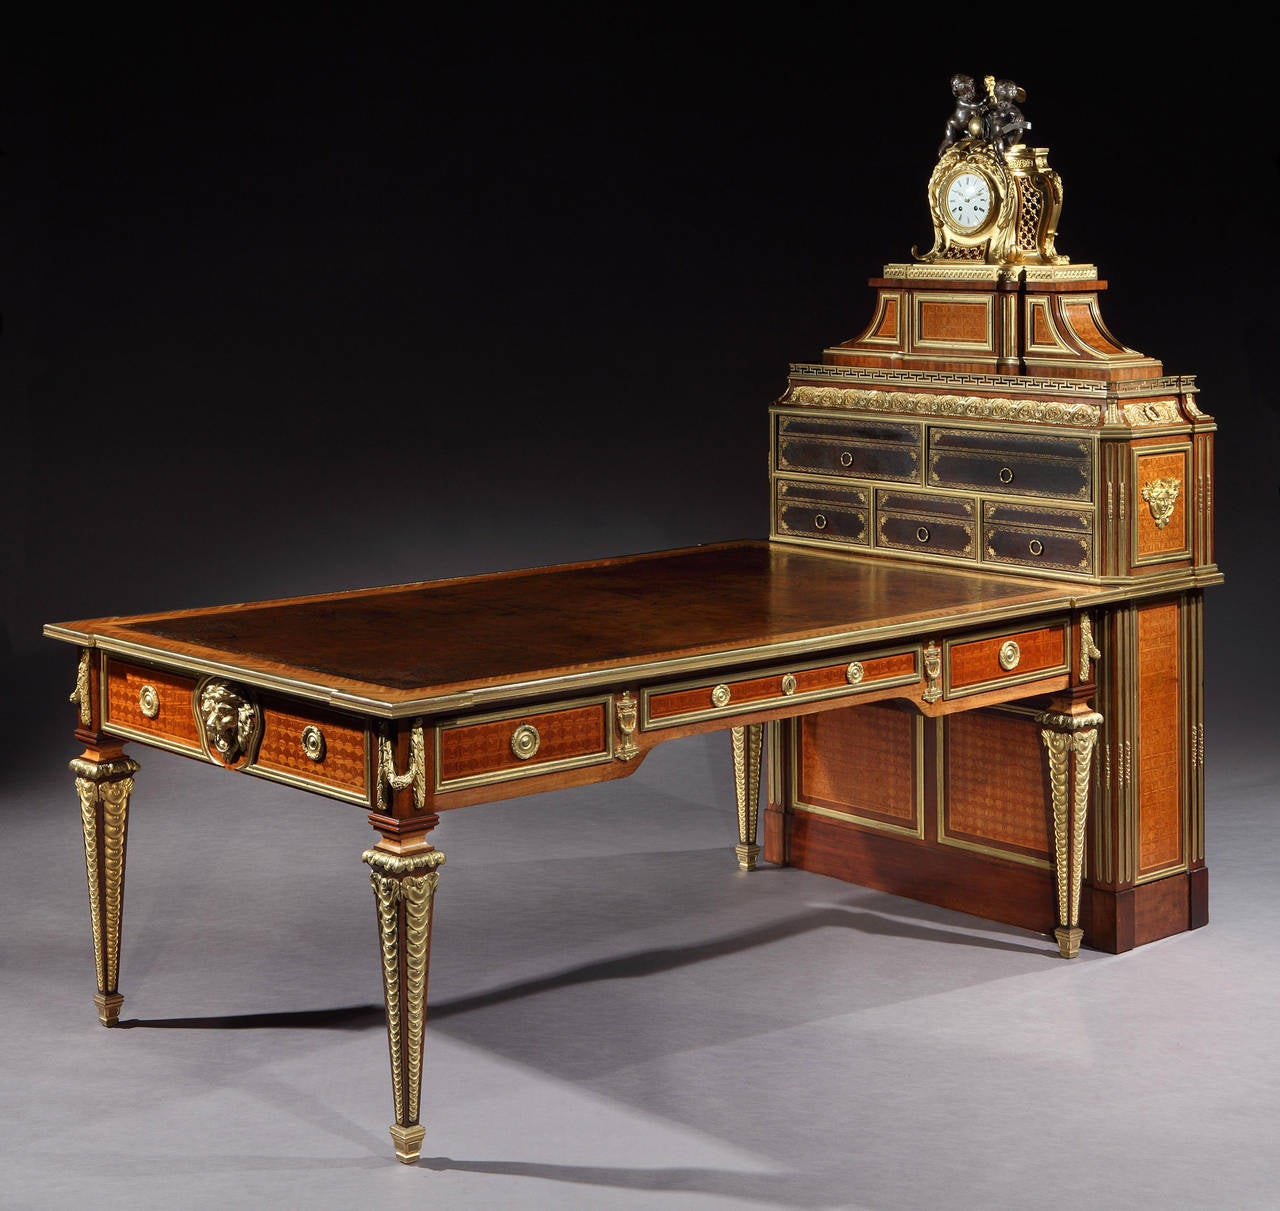 Cartonnier in the Louis XVI Manner after the Original by Simon Oeben  Constructed in kingwood and - Antique French Parquetry And Bronze Cartonnier Writing Desk With